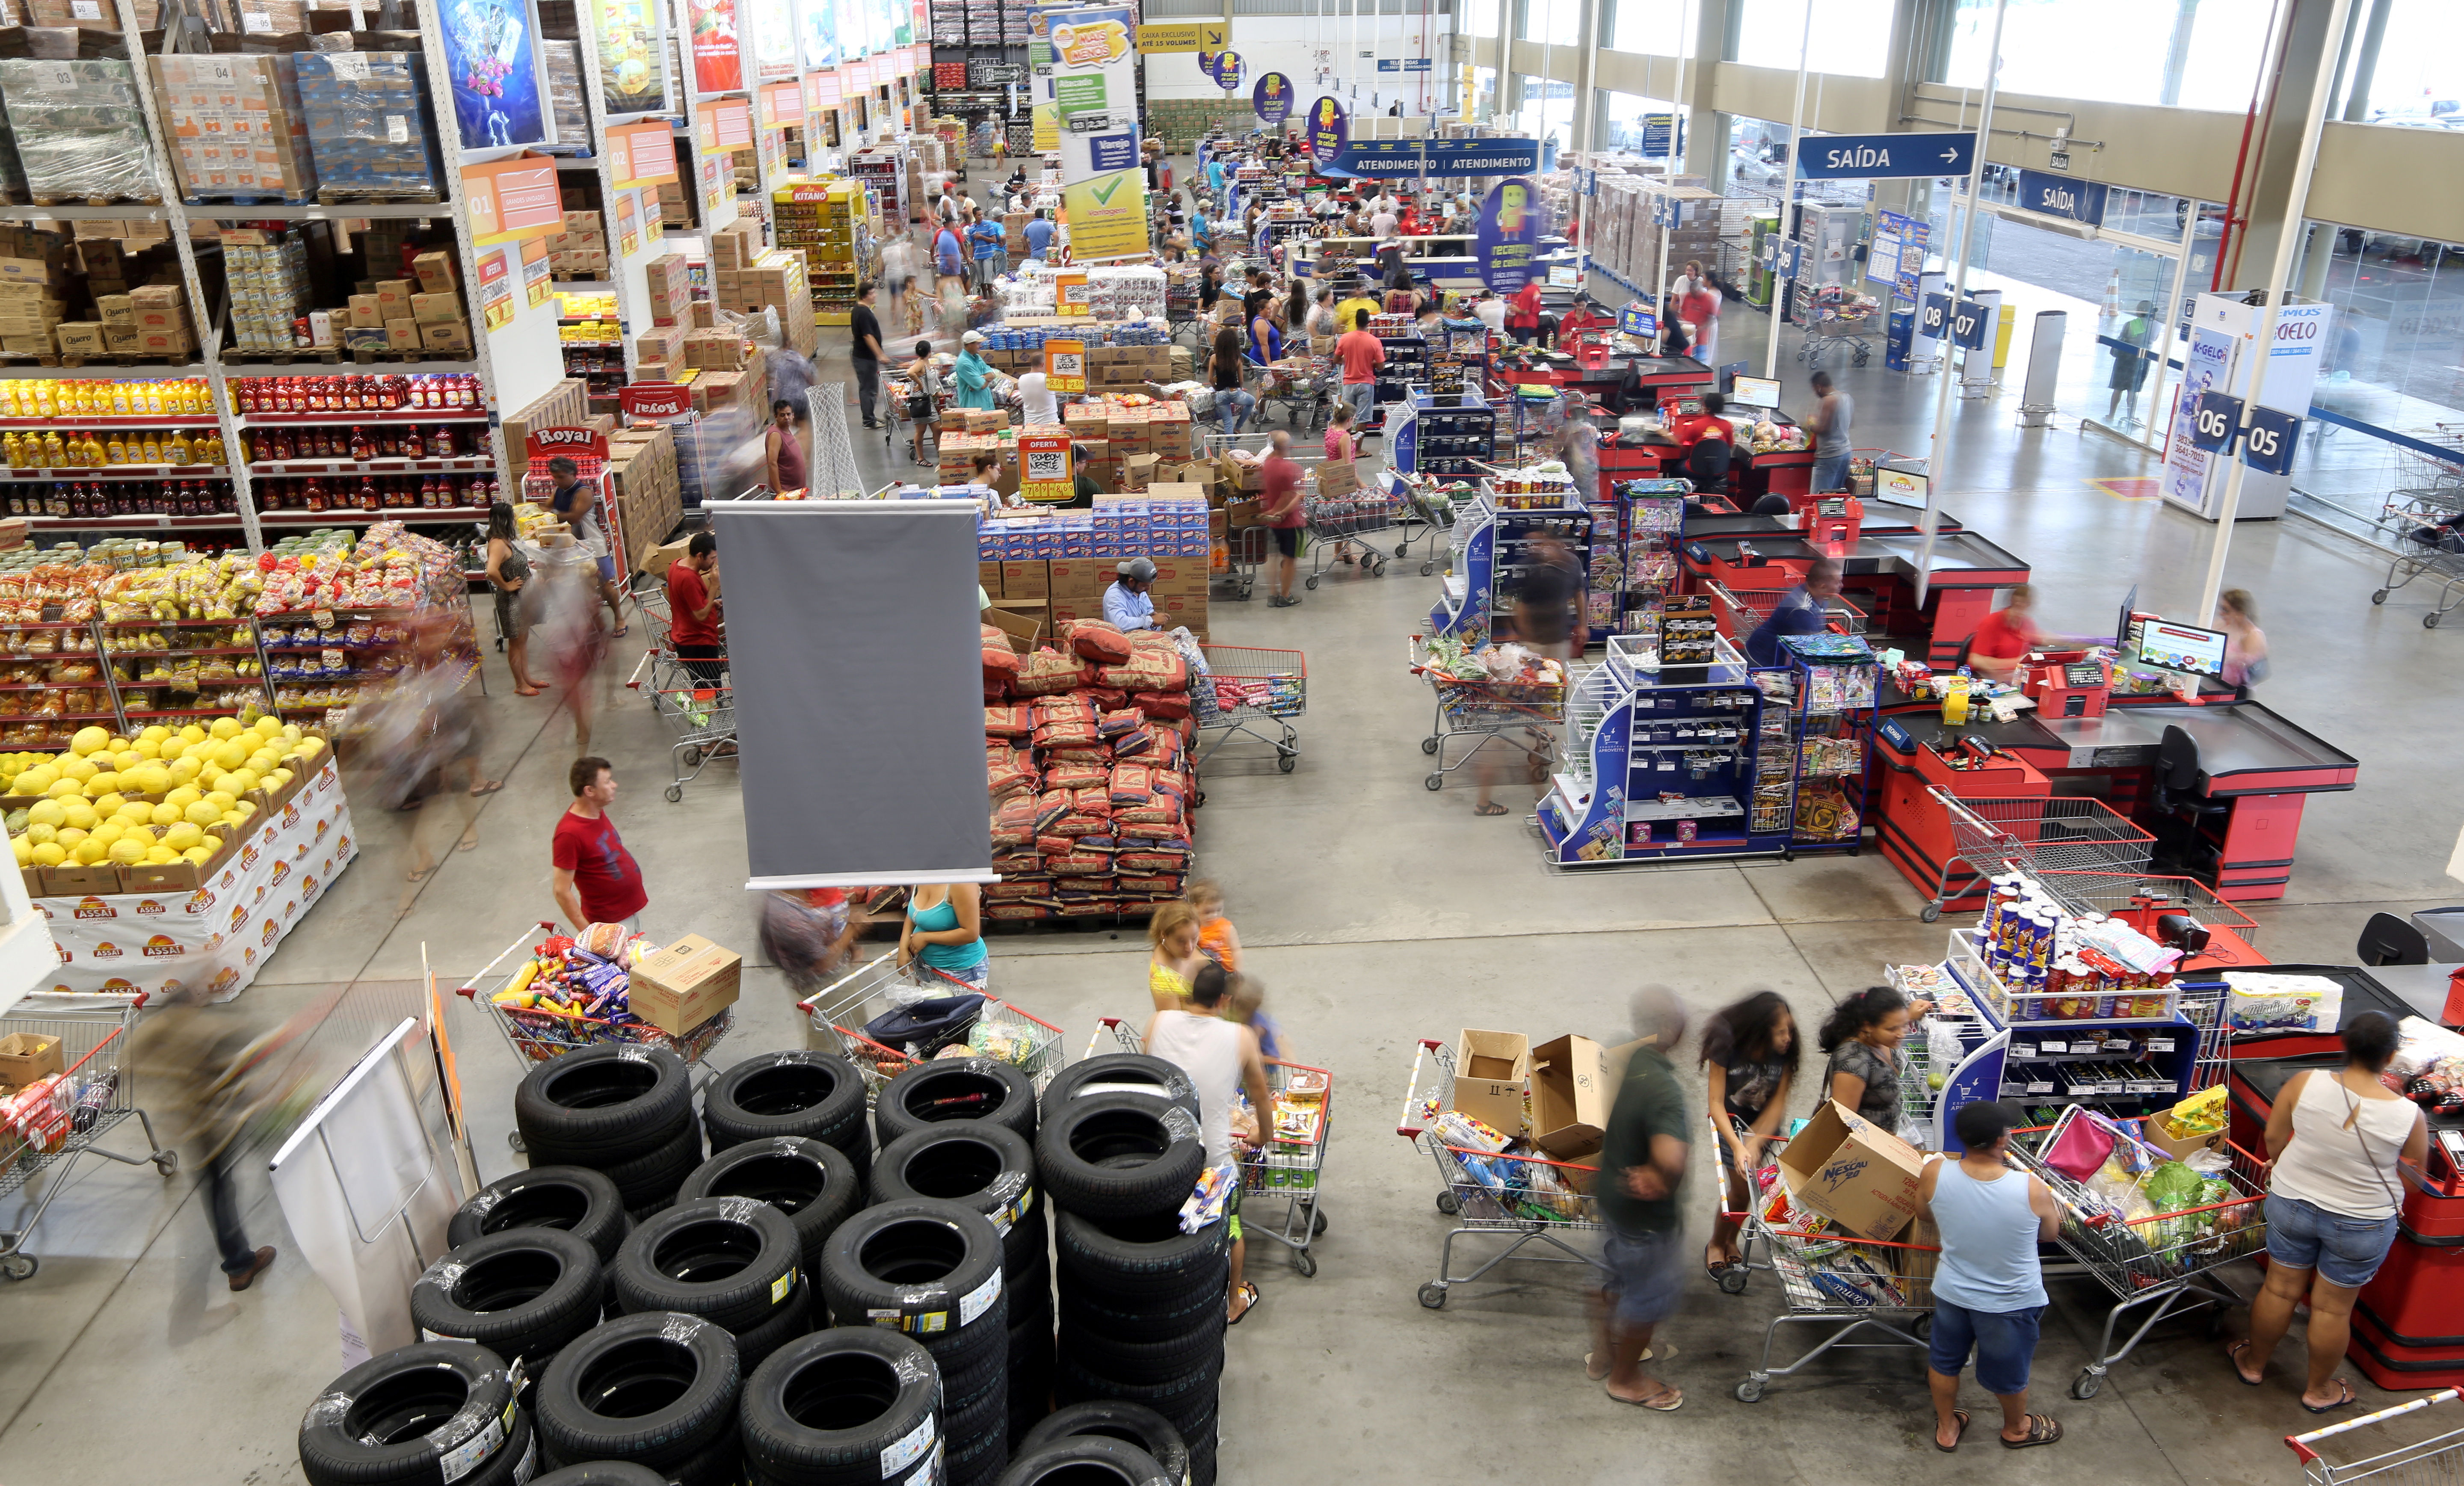 Consumers shop at a supermarket in Sao Paulo, Brazil January 11, 2017. REUTERS/Paulo Whitaker/File Photo